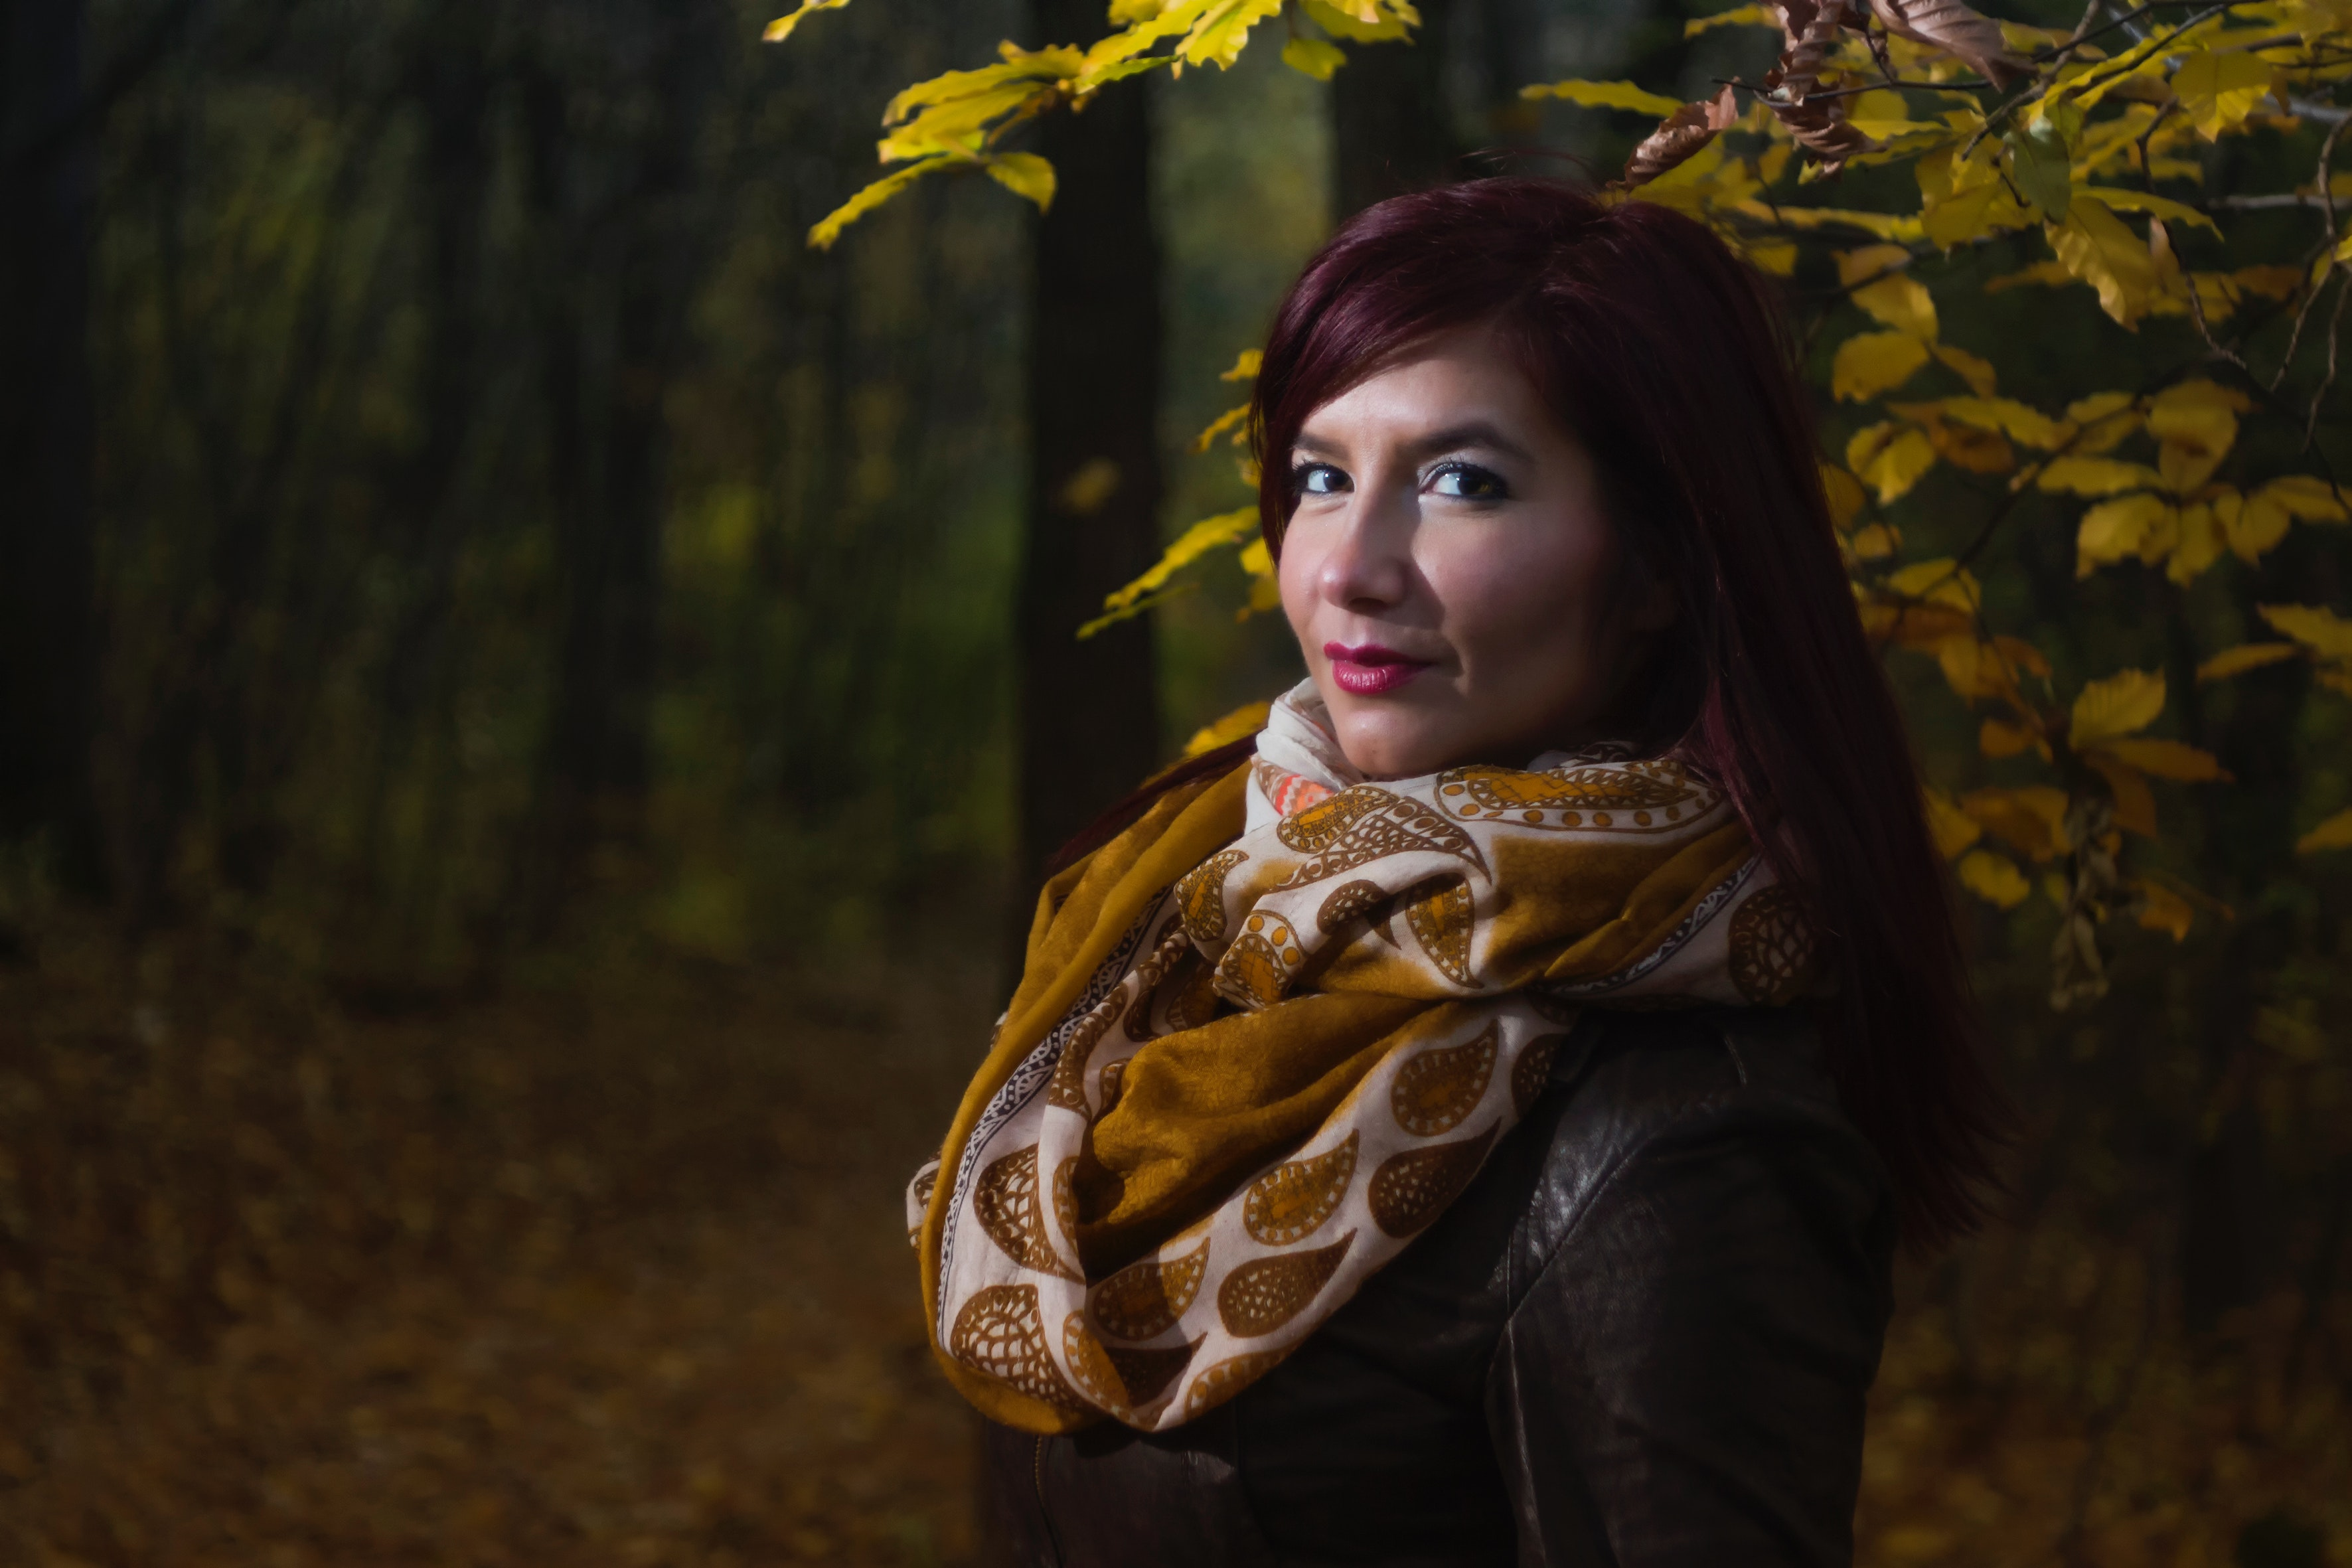 Woman wearing brown and white scarf surrounded by trees at daytime photo